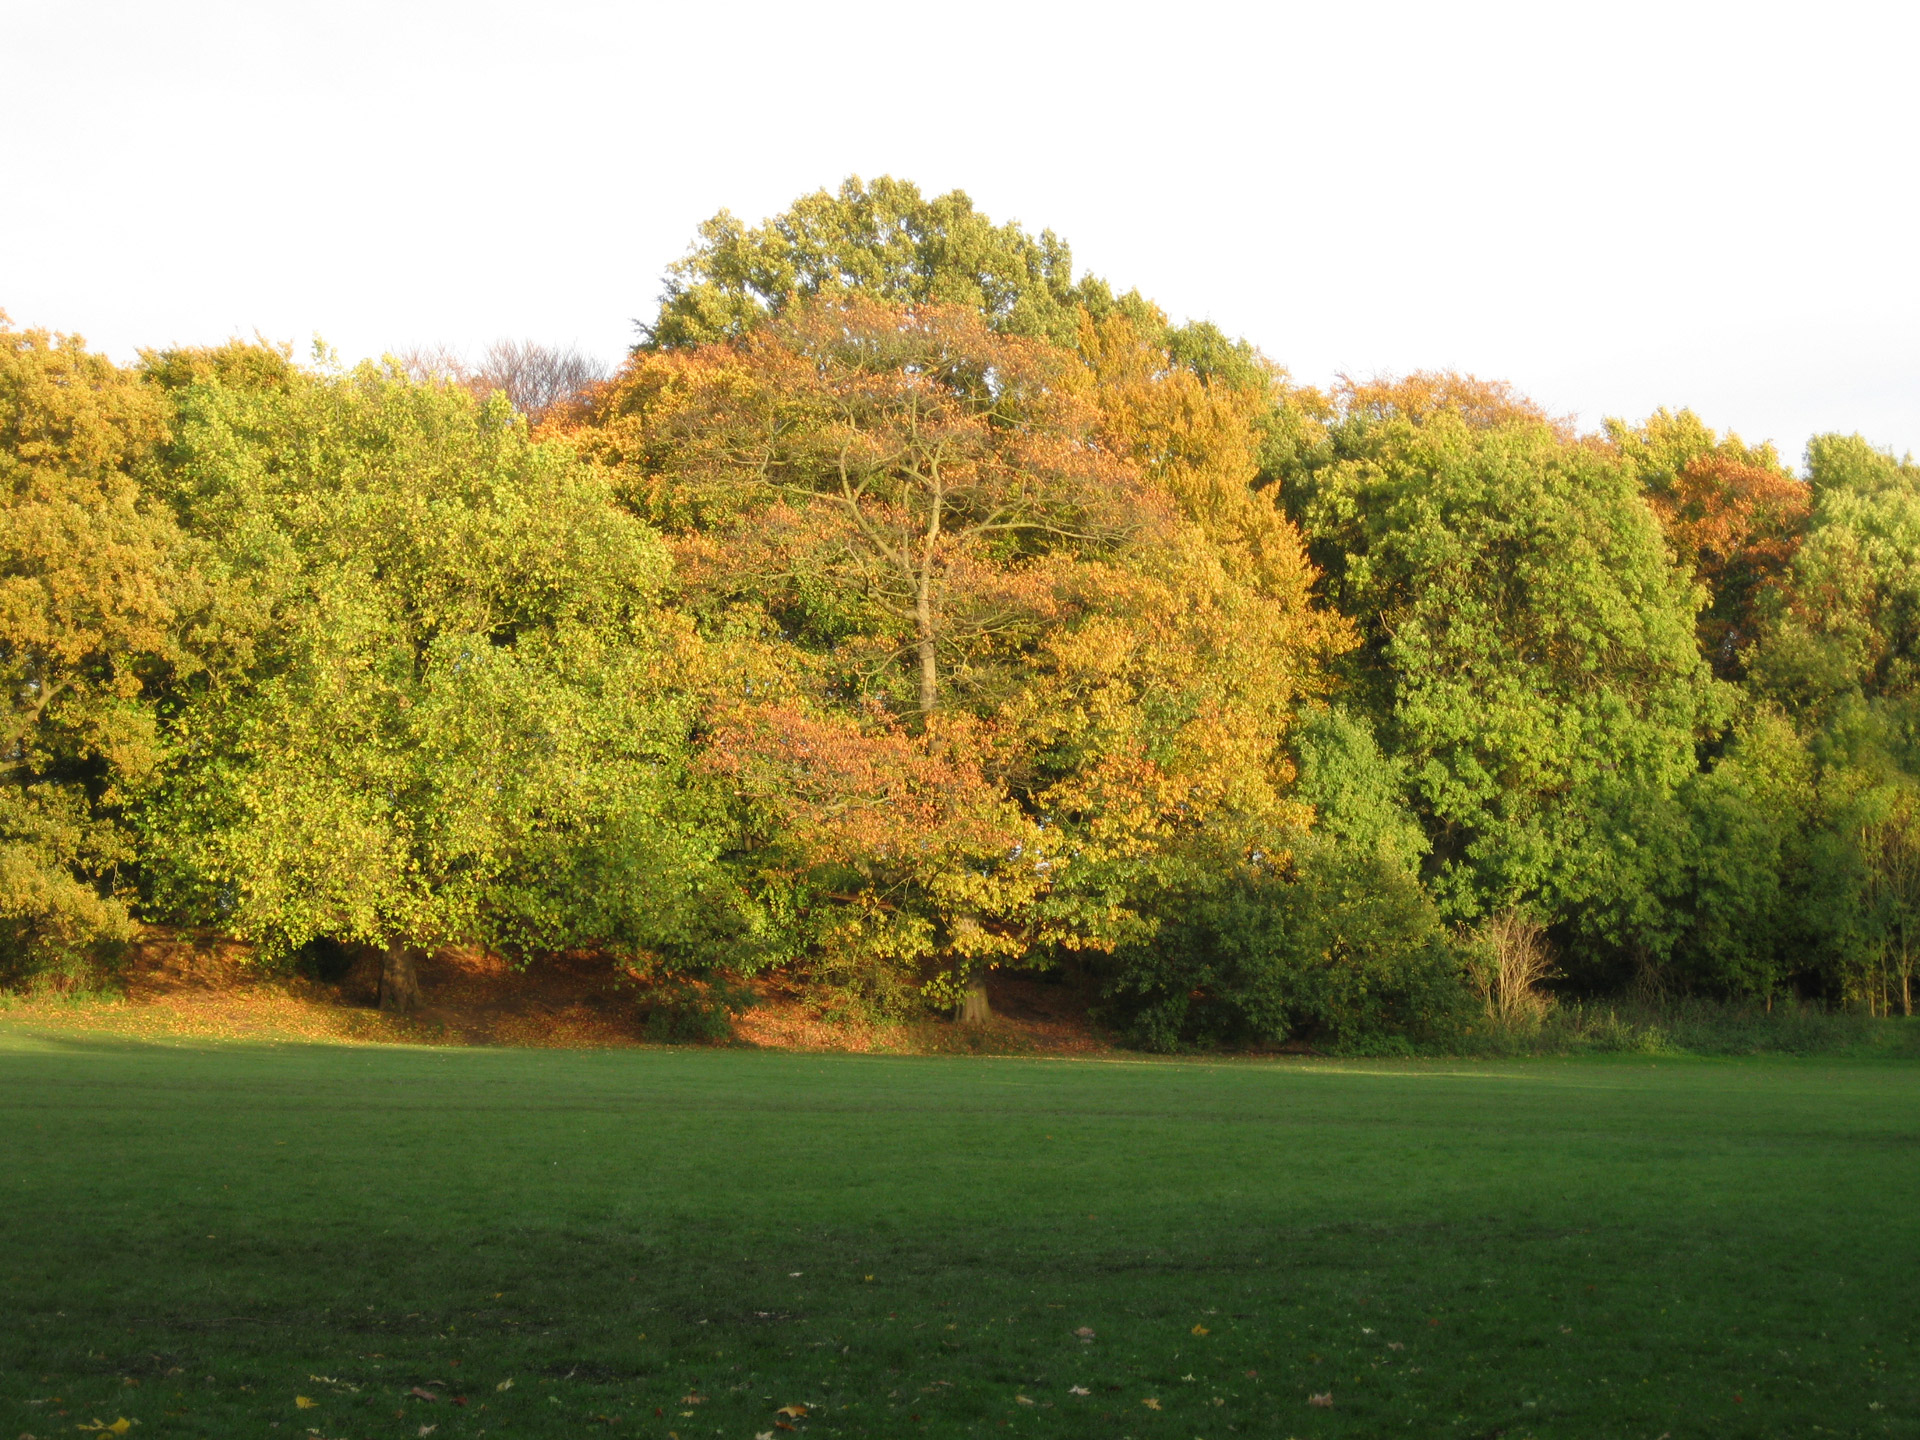 hampstead-heath-londres.jpg